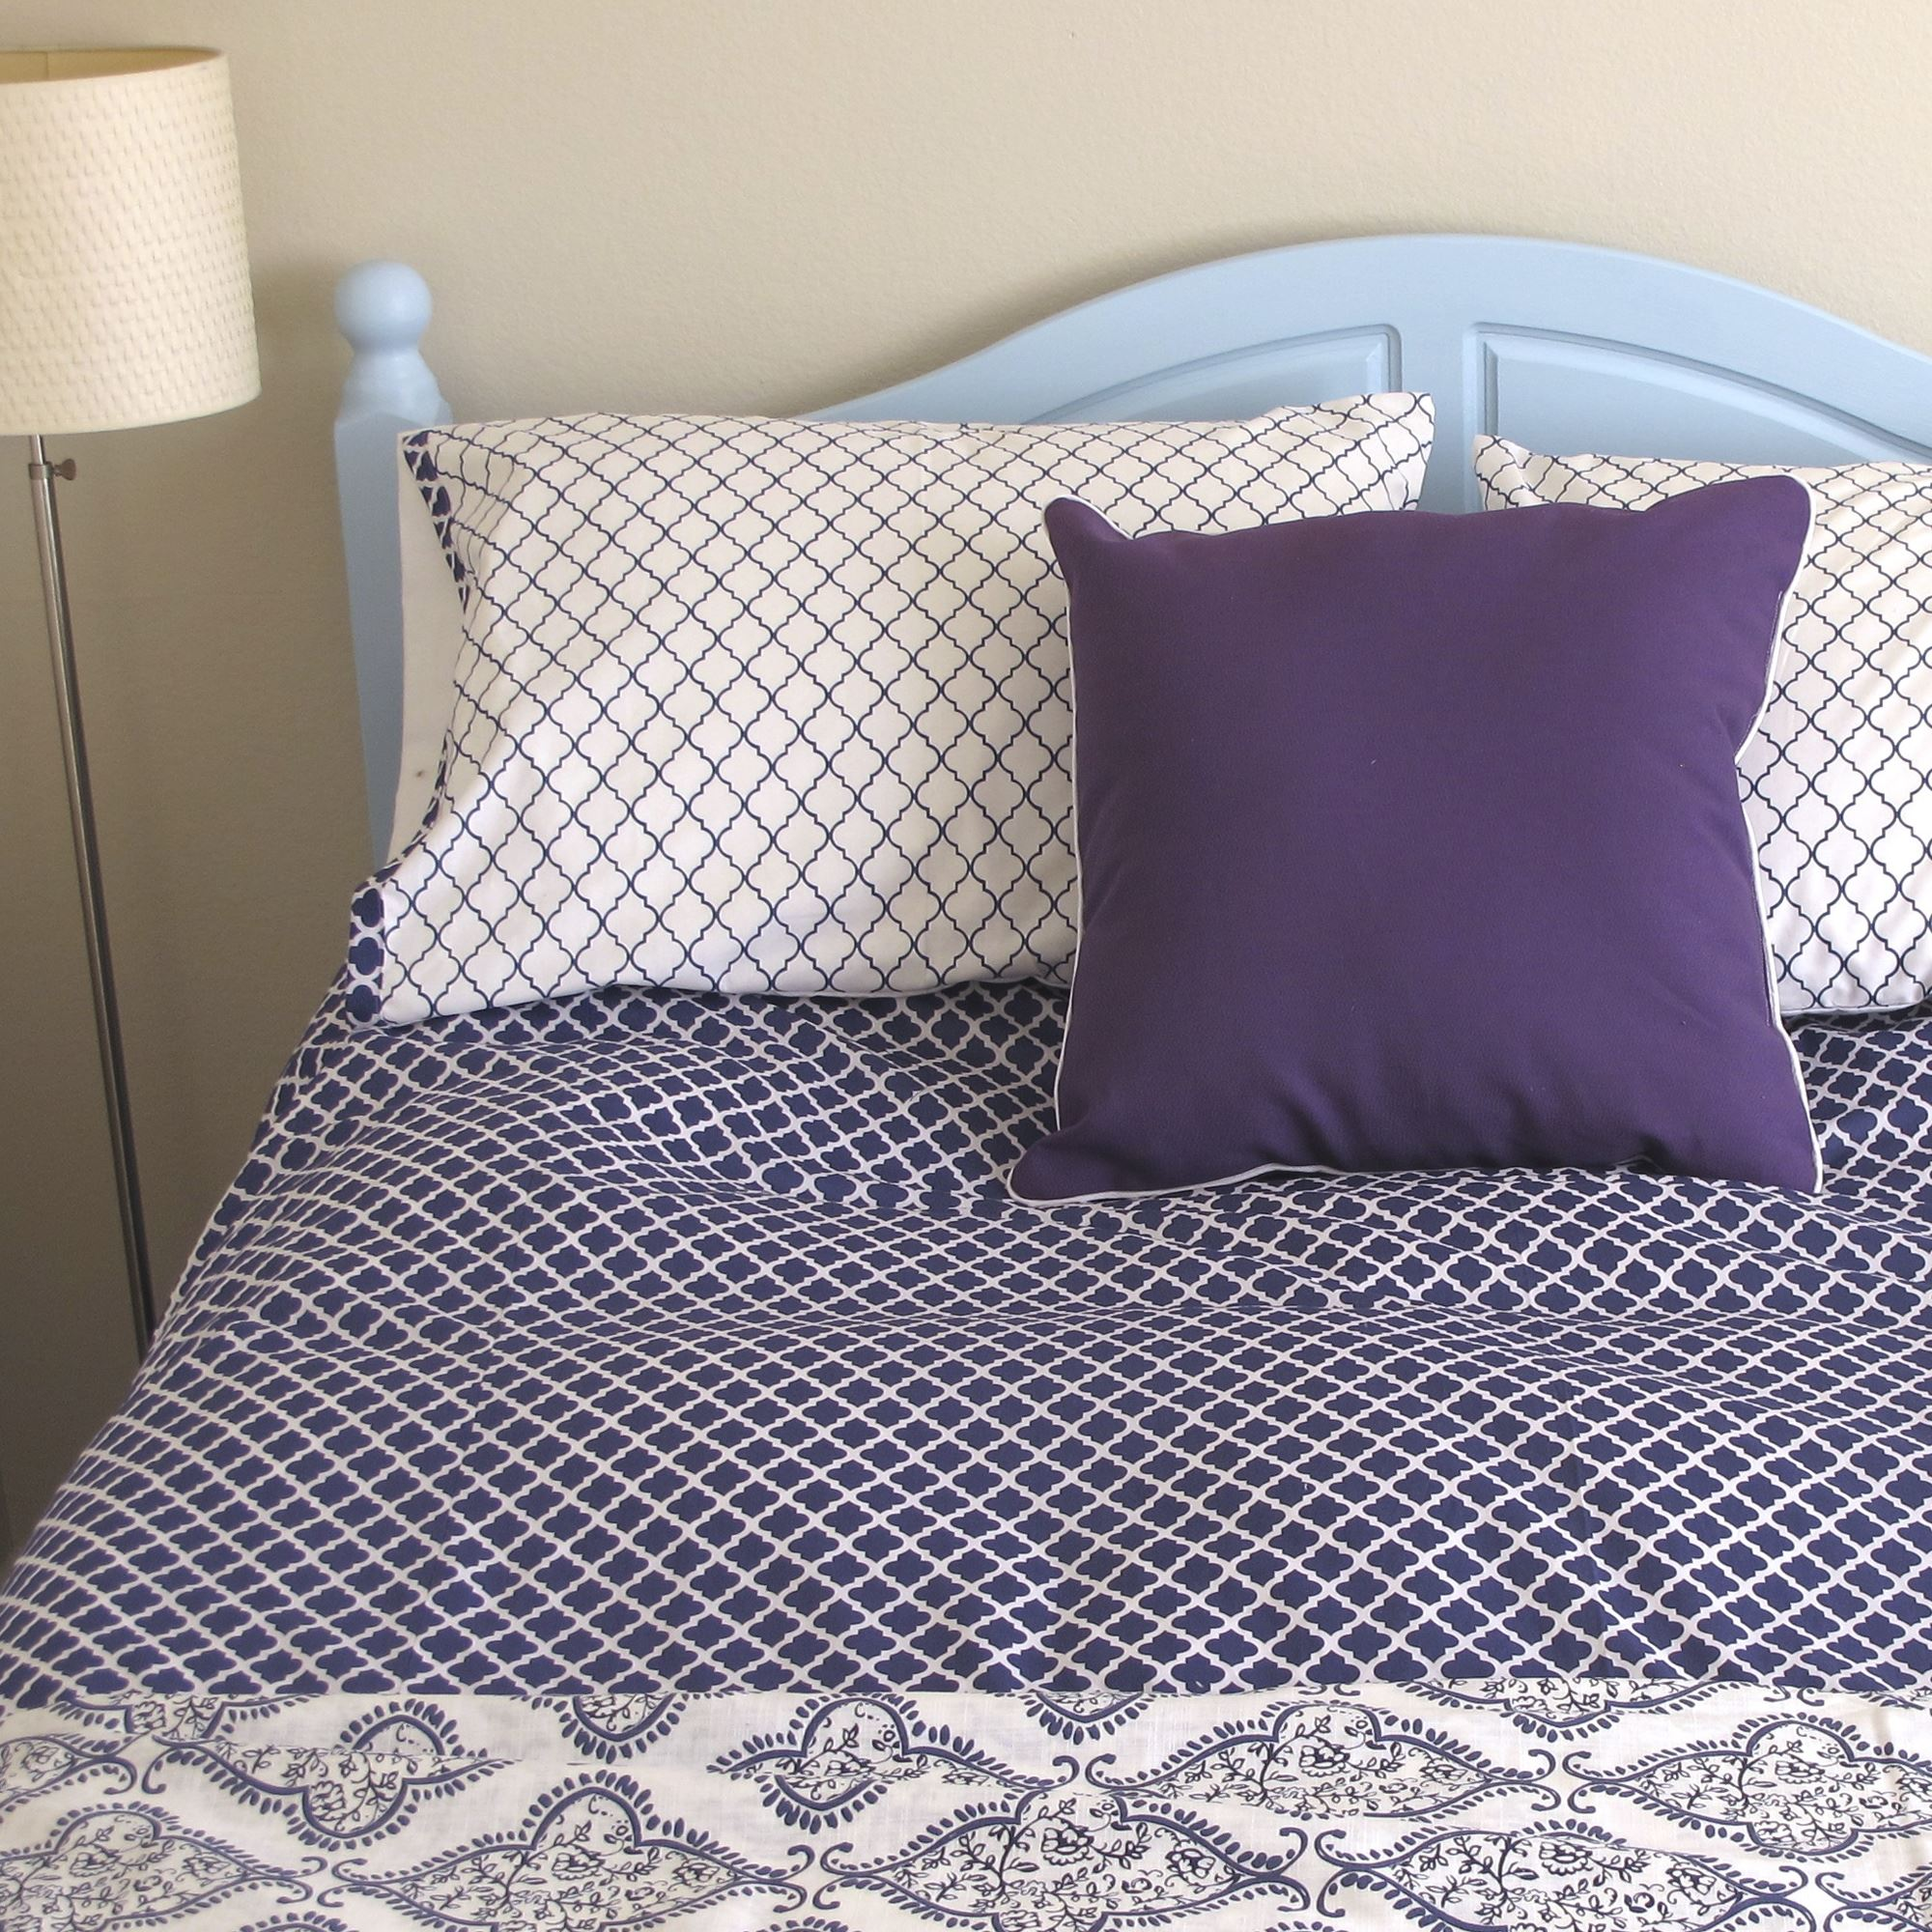 Diy Tutorial How To Make A Duvet Cover And Matching Shams